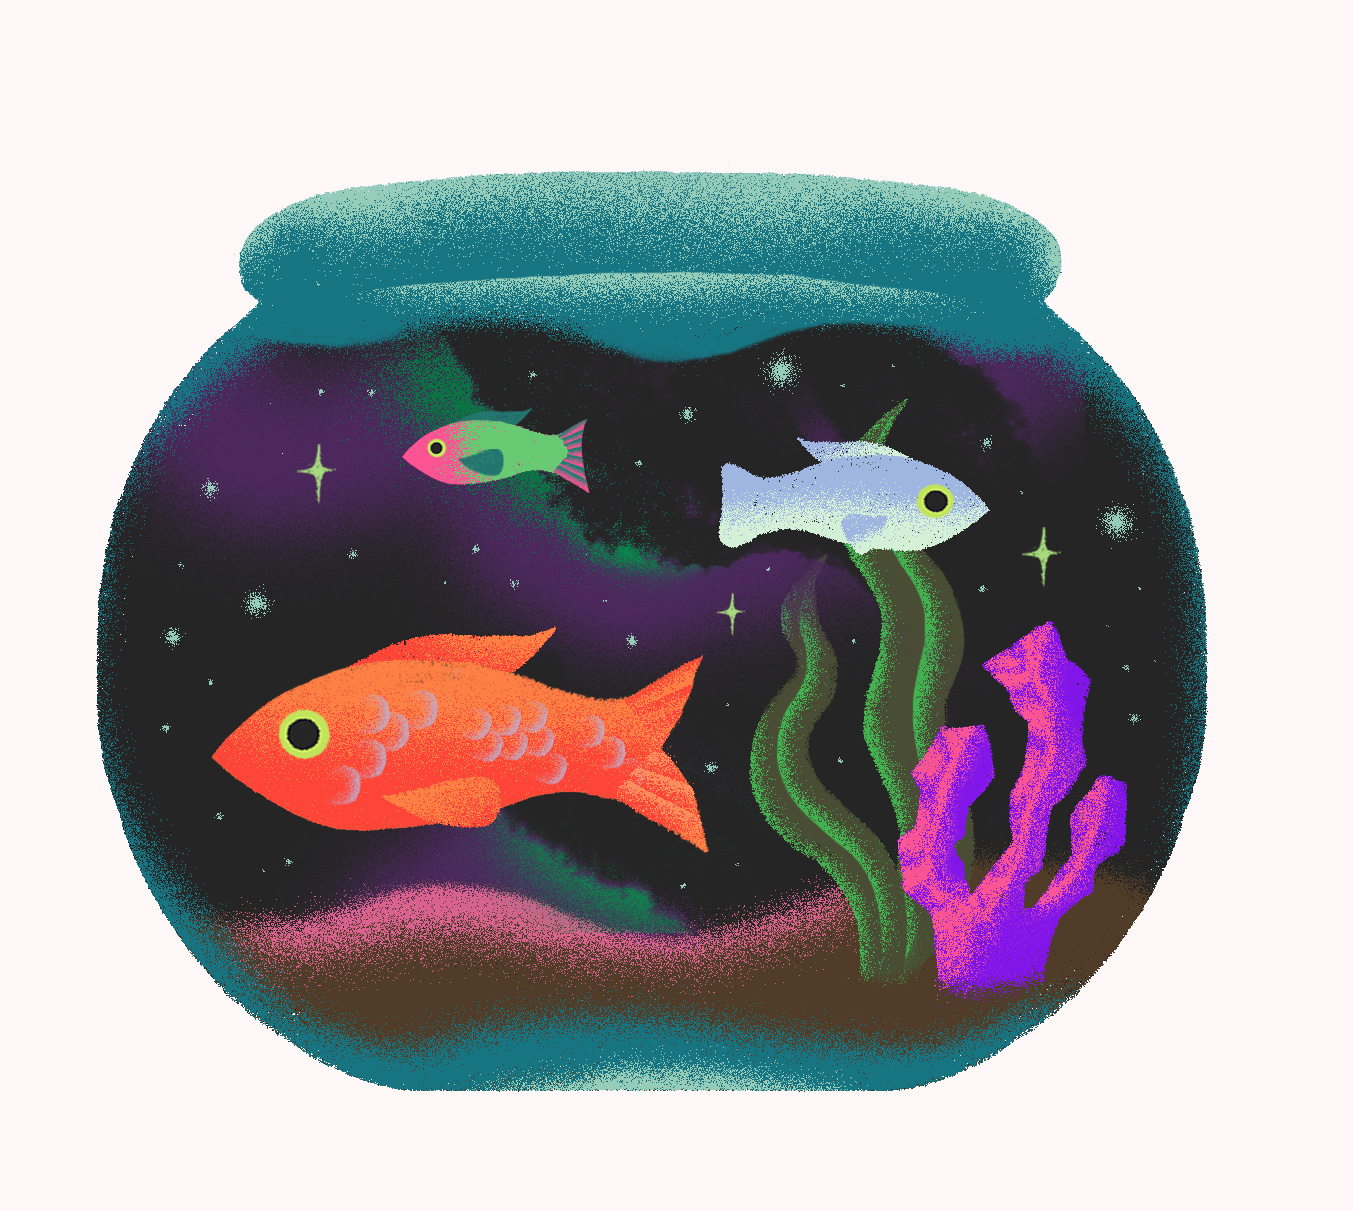 Fishbowl full of space